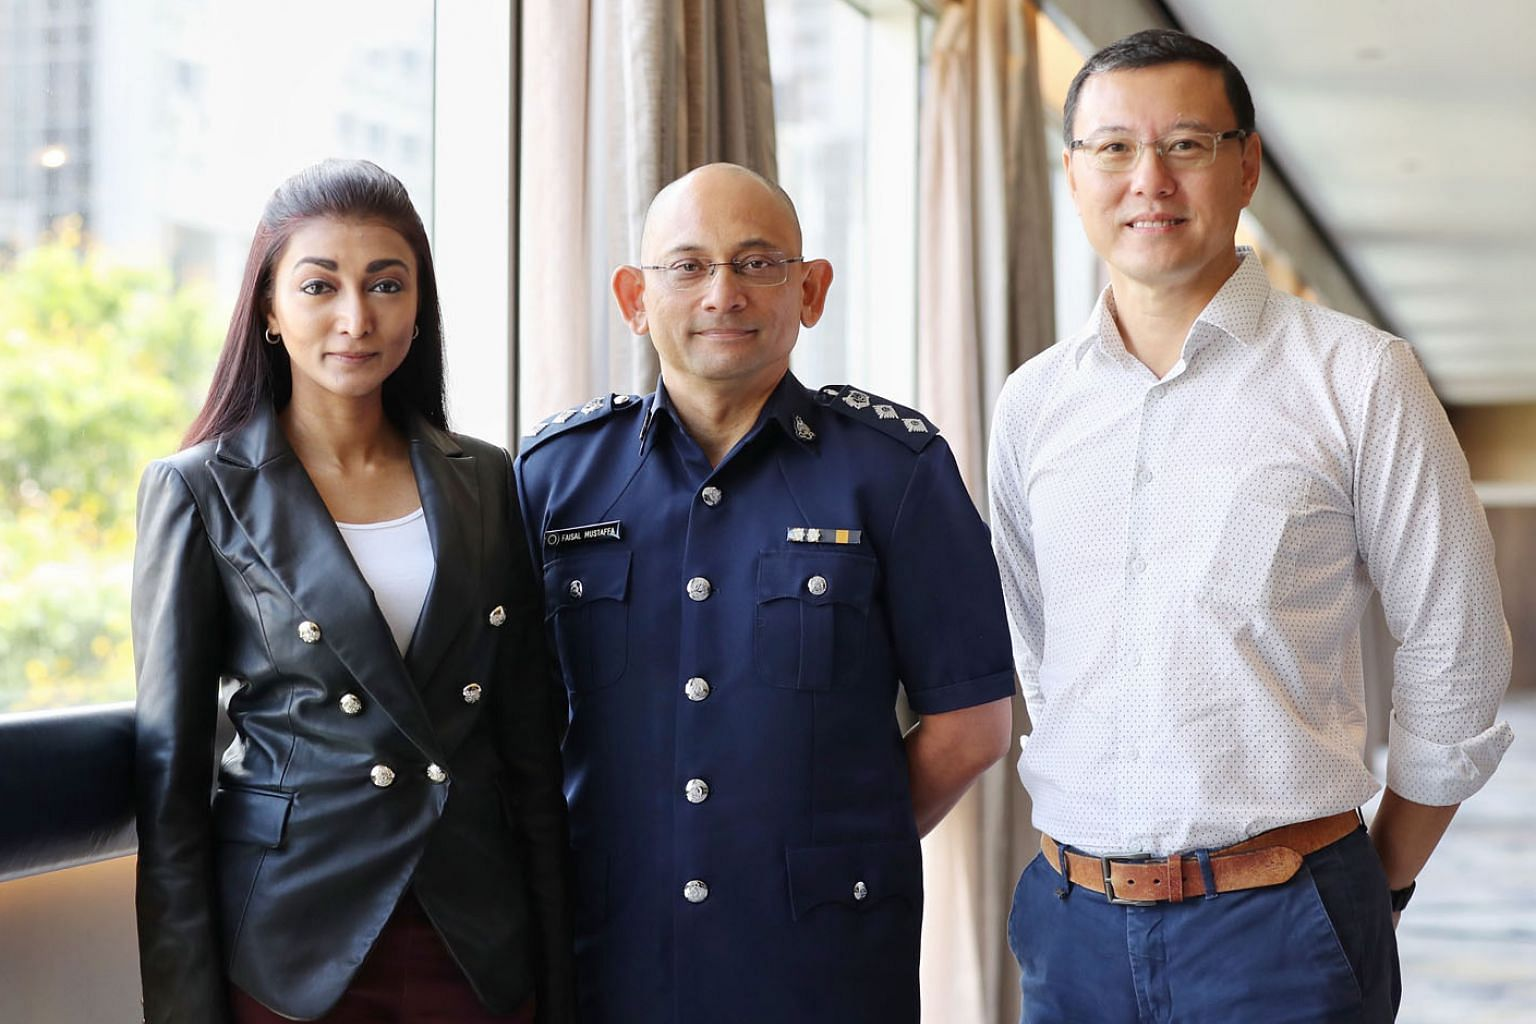 Ms Shanti Pandian, director of Community Action for the Rehabilitation of Ex-offenders Network; Singapore Prison Service Superintendent Faisal Mustaffa of Institution B4; and Mr Andrew Tay, executive director of Prison Fellowship Singapore, at a semi